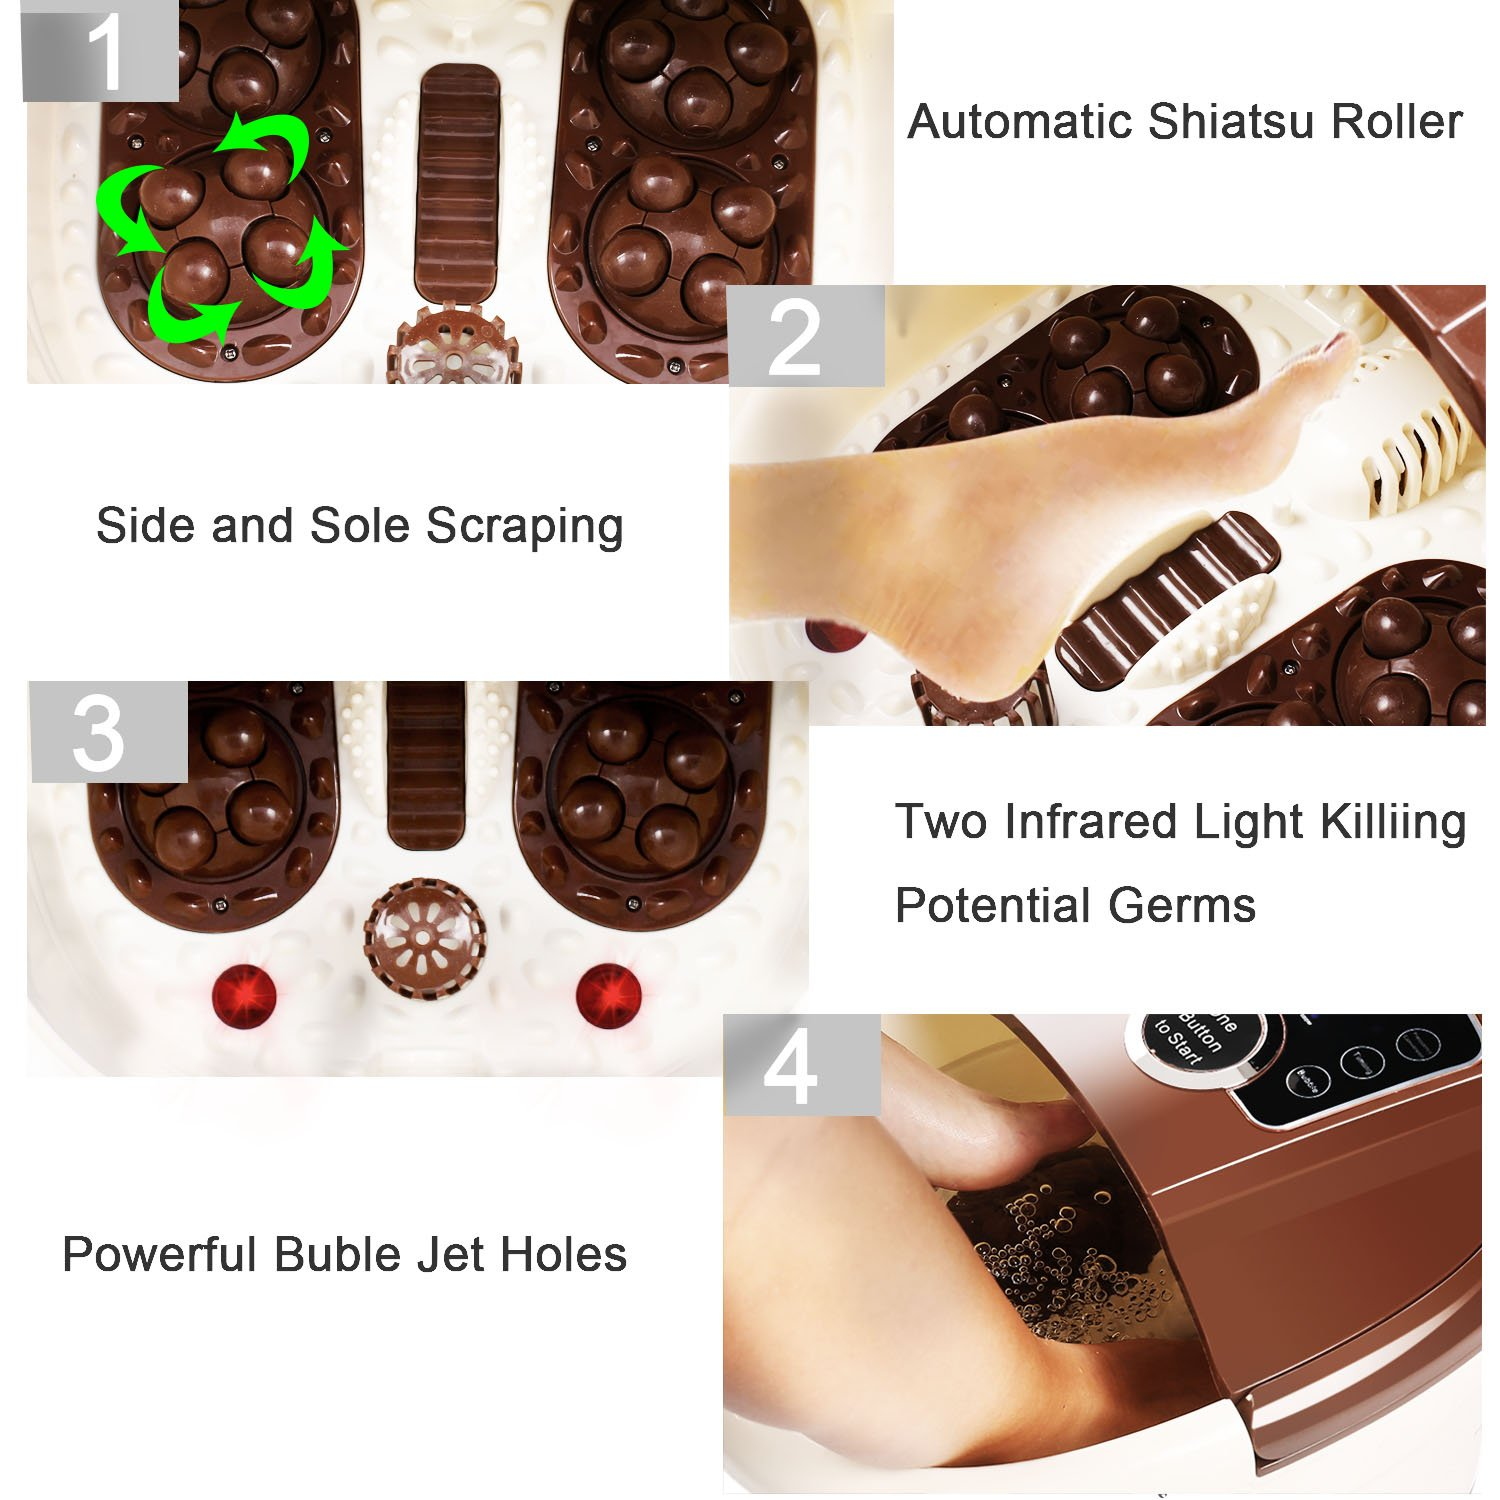 [ Best Gift !!! ] Guisee All in One Foot Spa Massager, Tai Chi Motorized Shiatsu Roller Massaging Acupuncture with O2 Bubbles,Digital Adjustable Temperature & Frequency Conversion on LED Display by Guisee (Image #5)